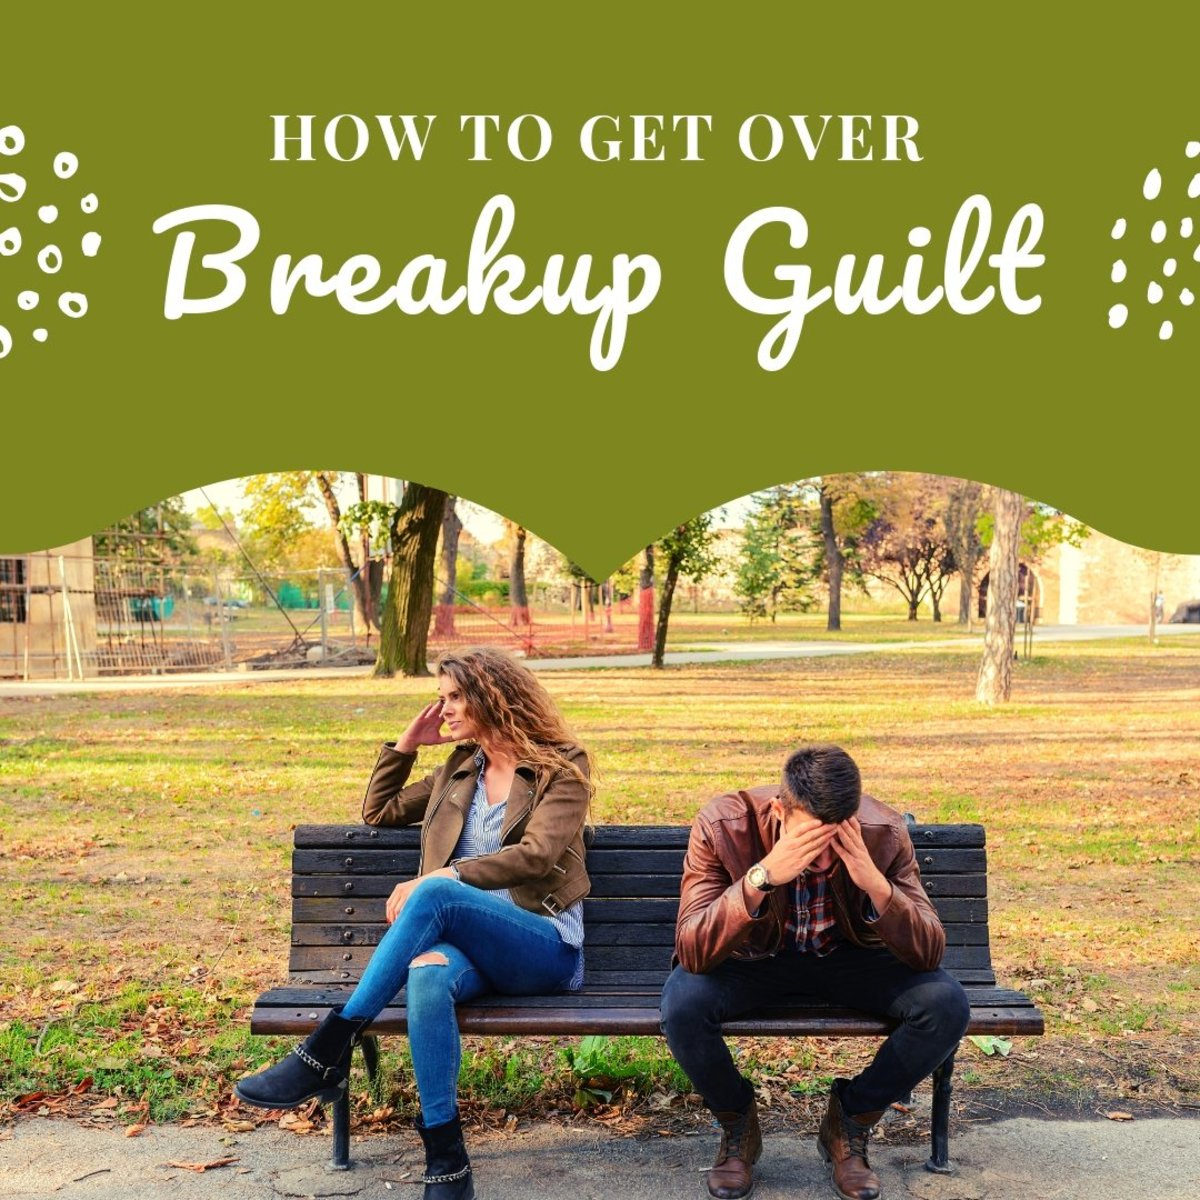 Don't let the feeling of guilt pin you down unnecessarily after a breakup.